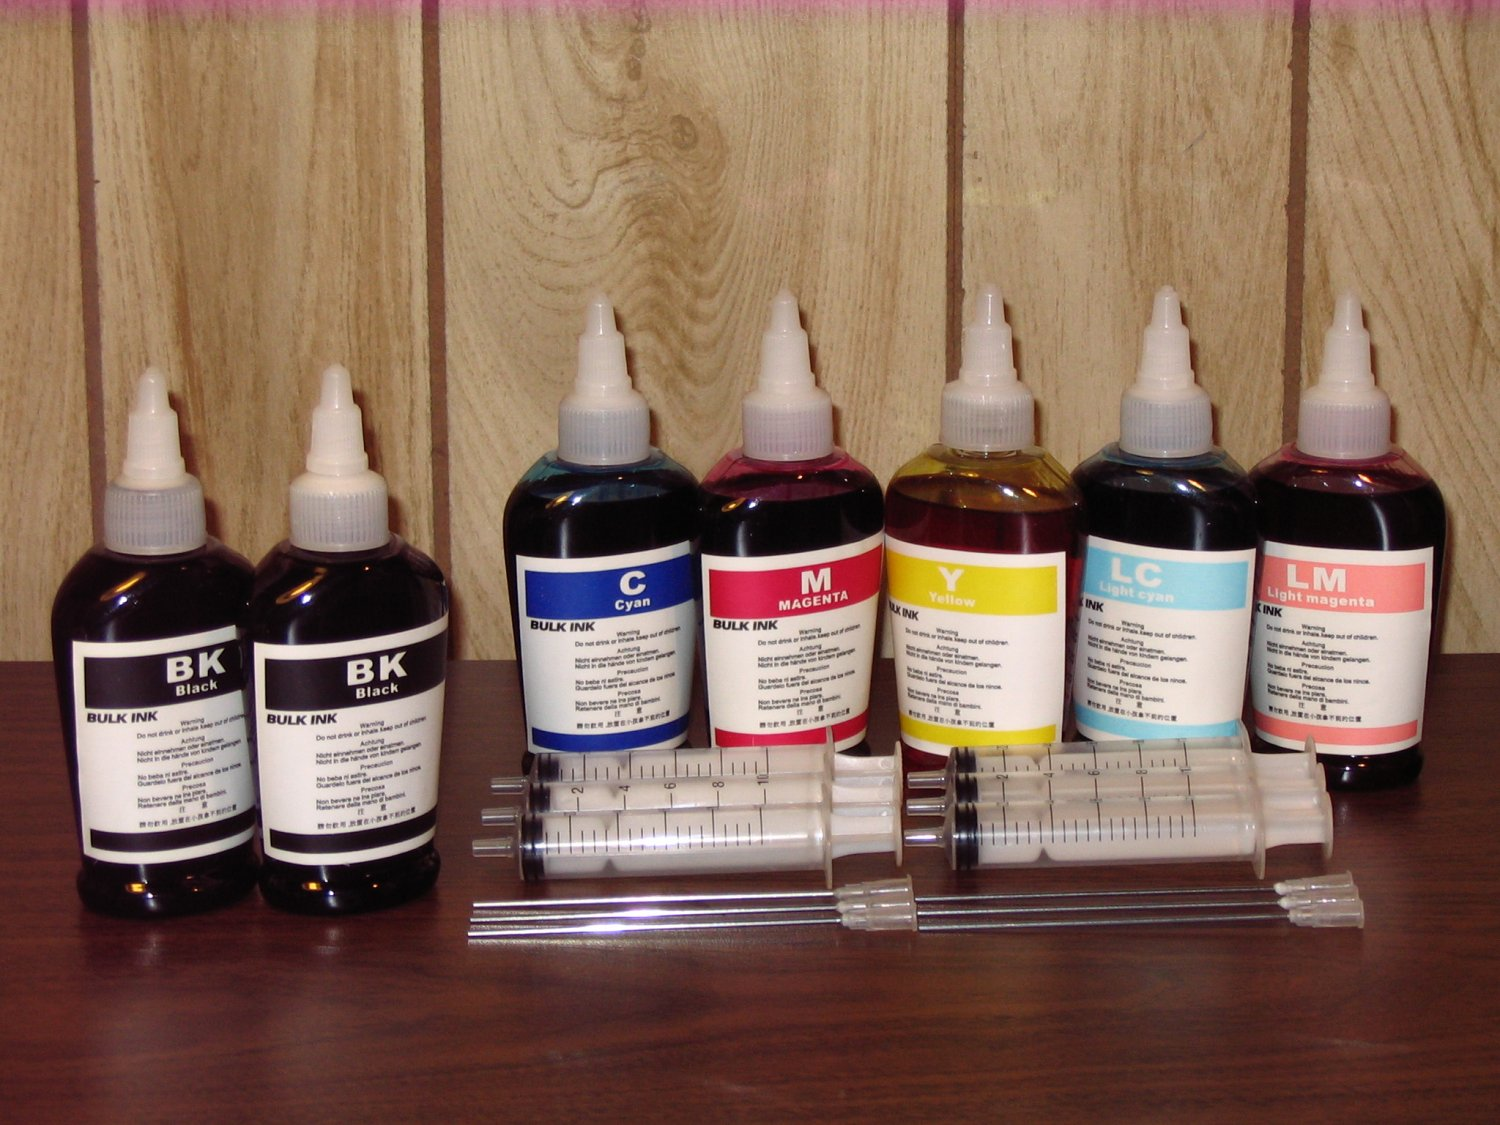 Bulk refill ink for CANON ink printer , 100ml x 7 bottles (2BK, 1C, 1M, 1Y, 1LC, 1LM)